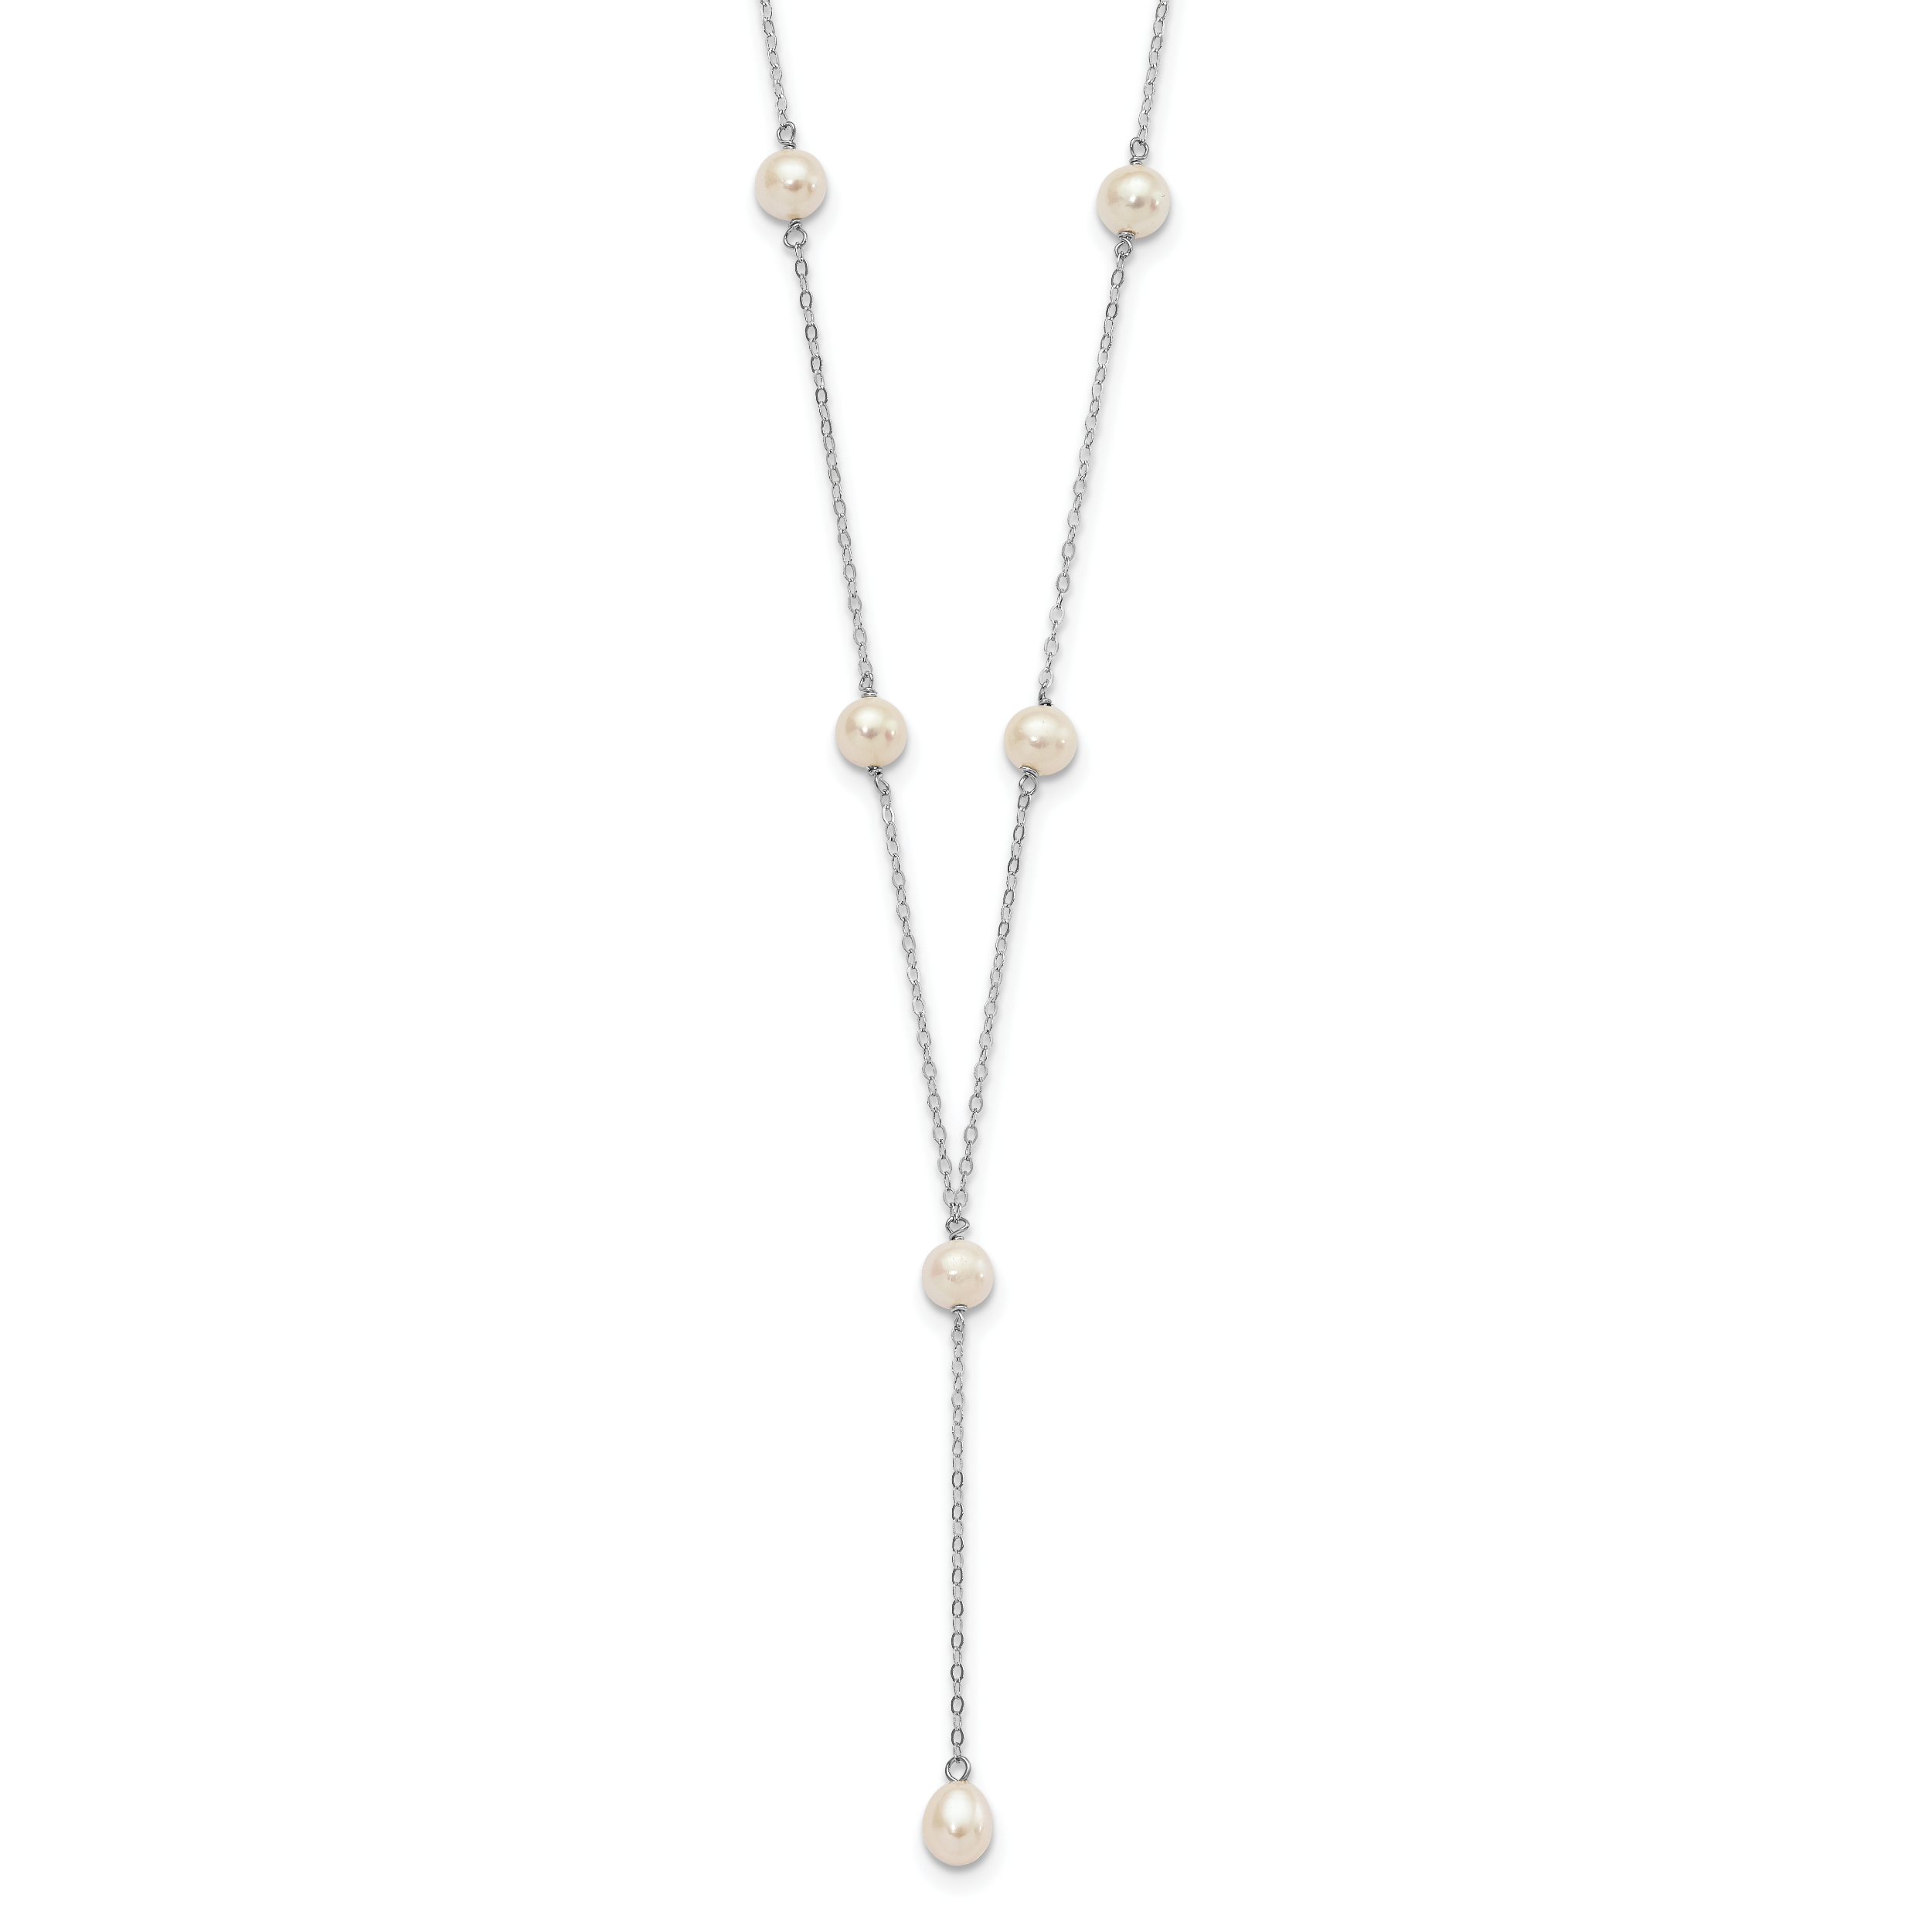 Jewelry Necklaces Pearls 14K WG 4-5mm White Near Round FW Cultured Pearl 8-station Necklace